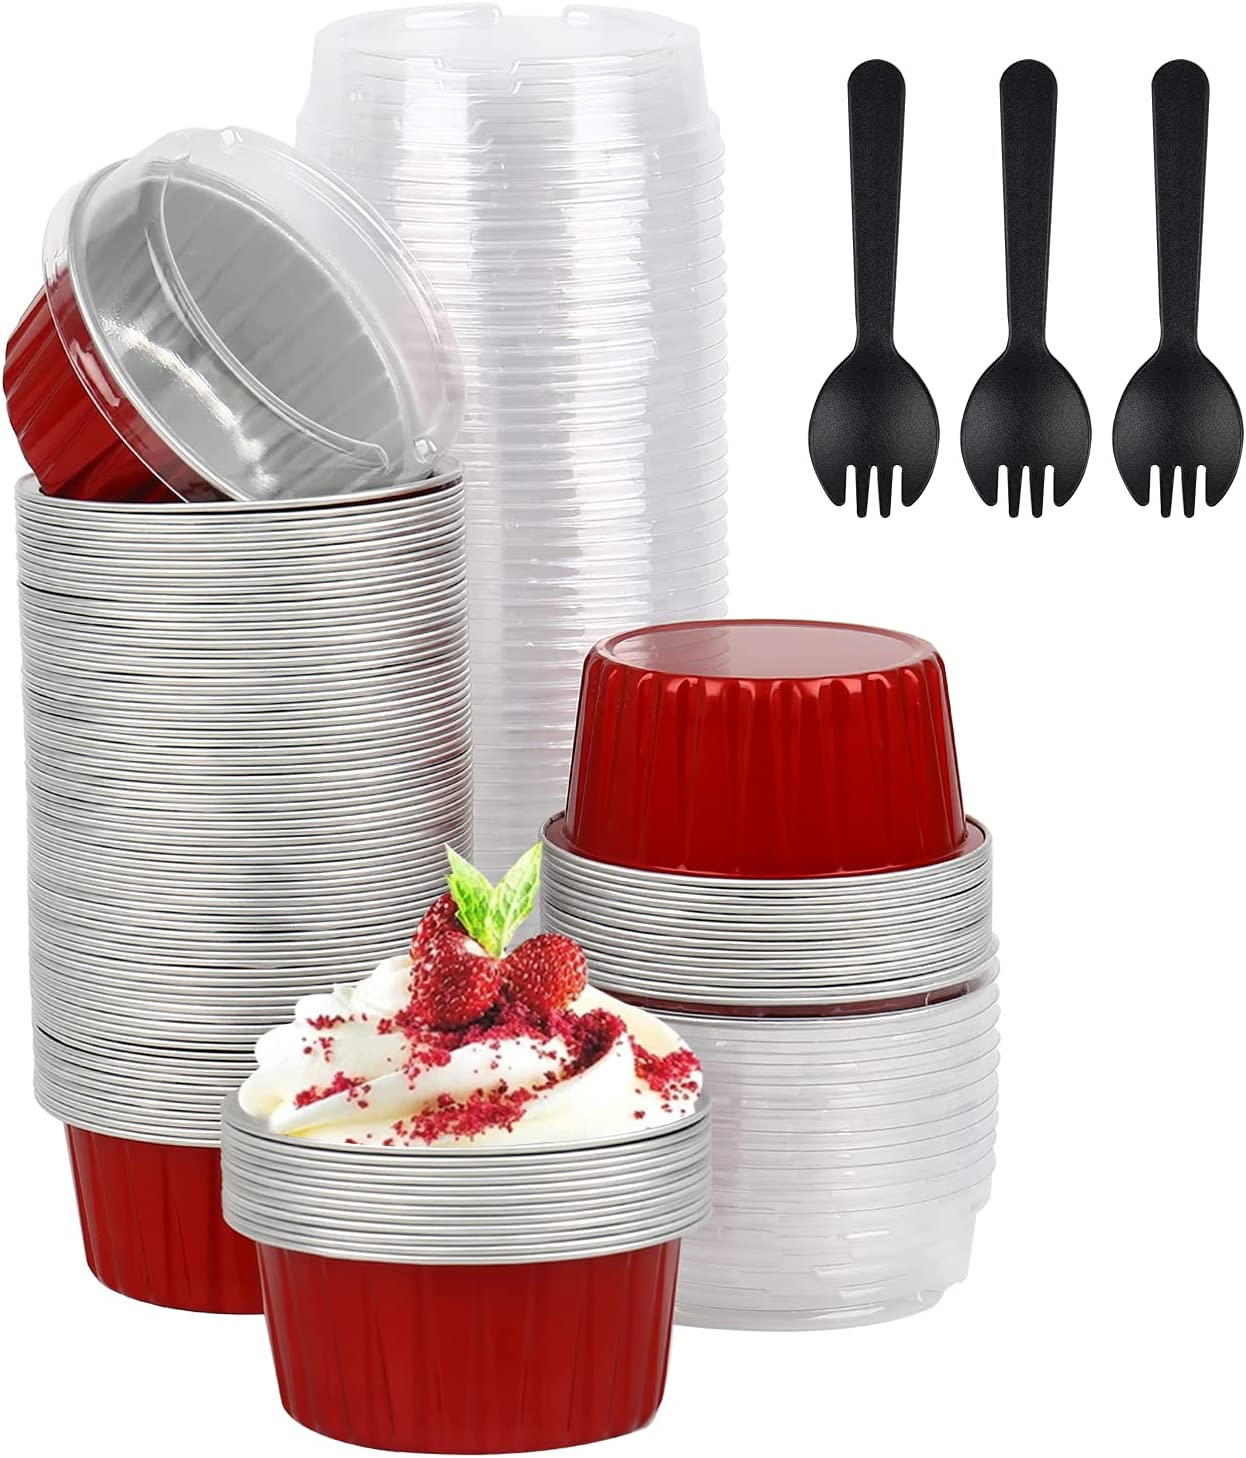 WMLBK Cupcake Baking Max 80% OFF Cups with Dessert Lids Foil Liners 2021 new